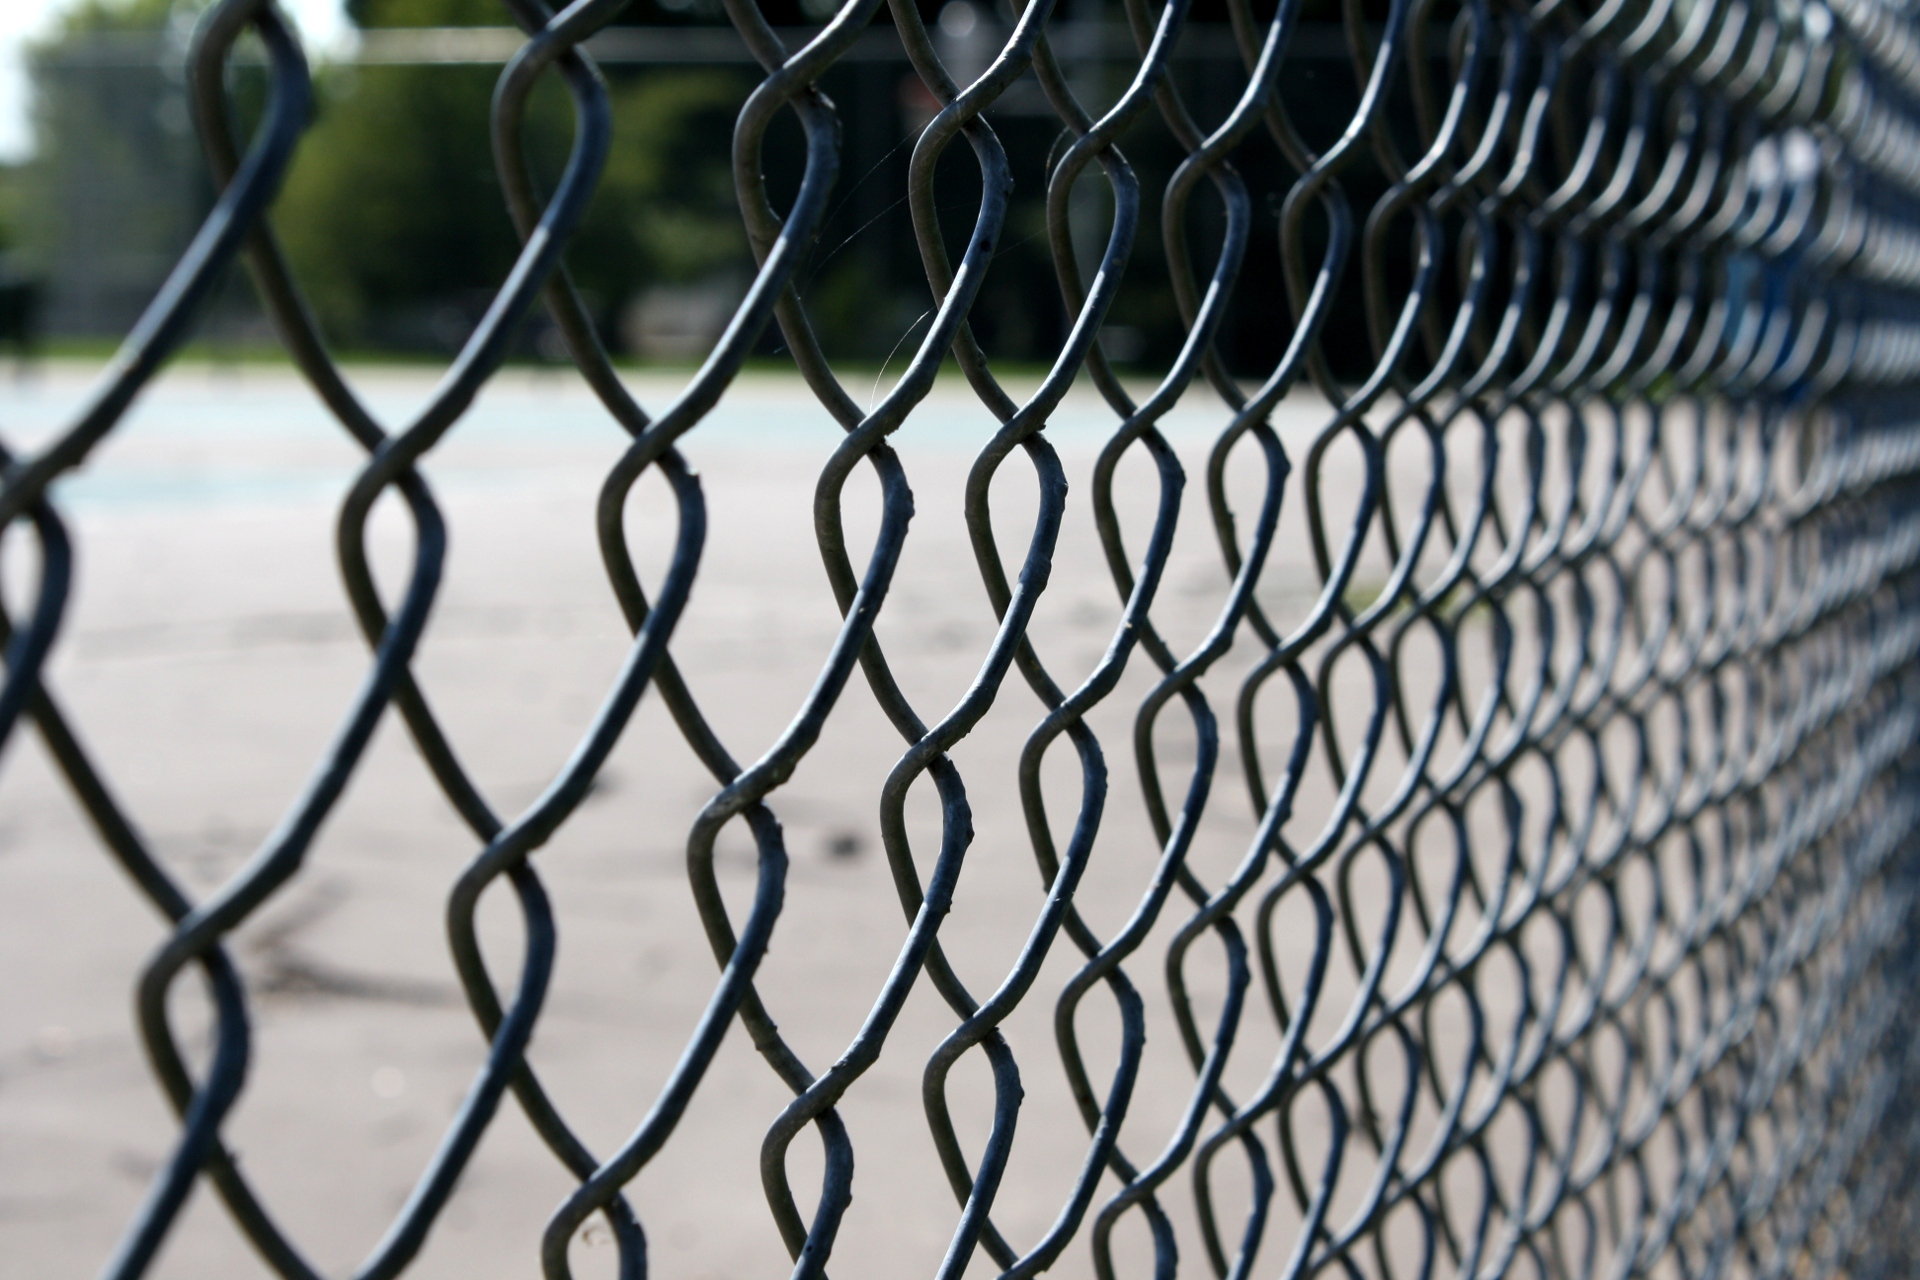 chain link fencing - DIY and Home Improvement Help and Advice